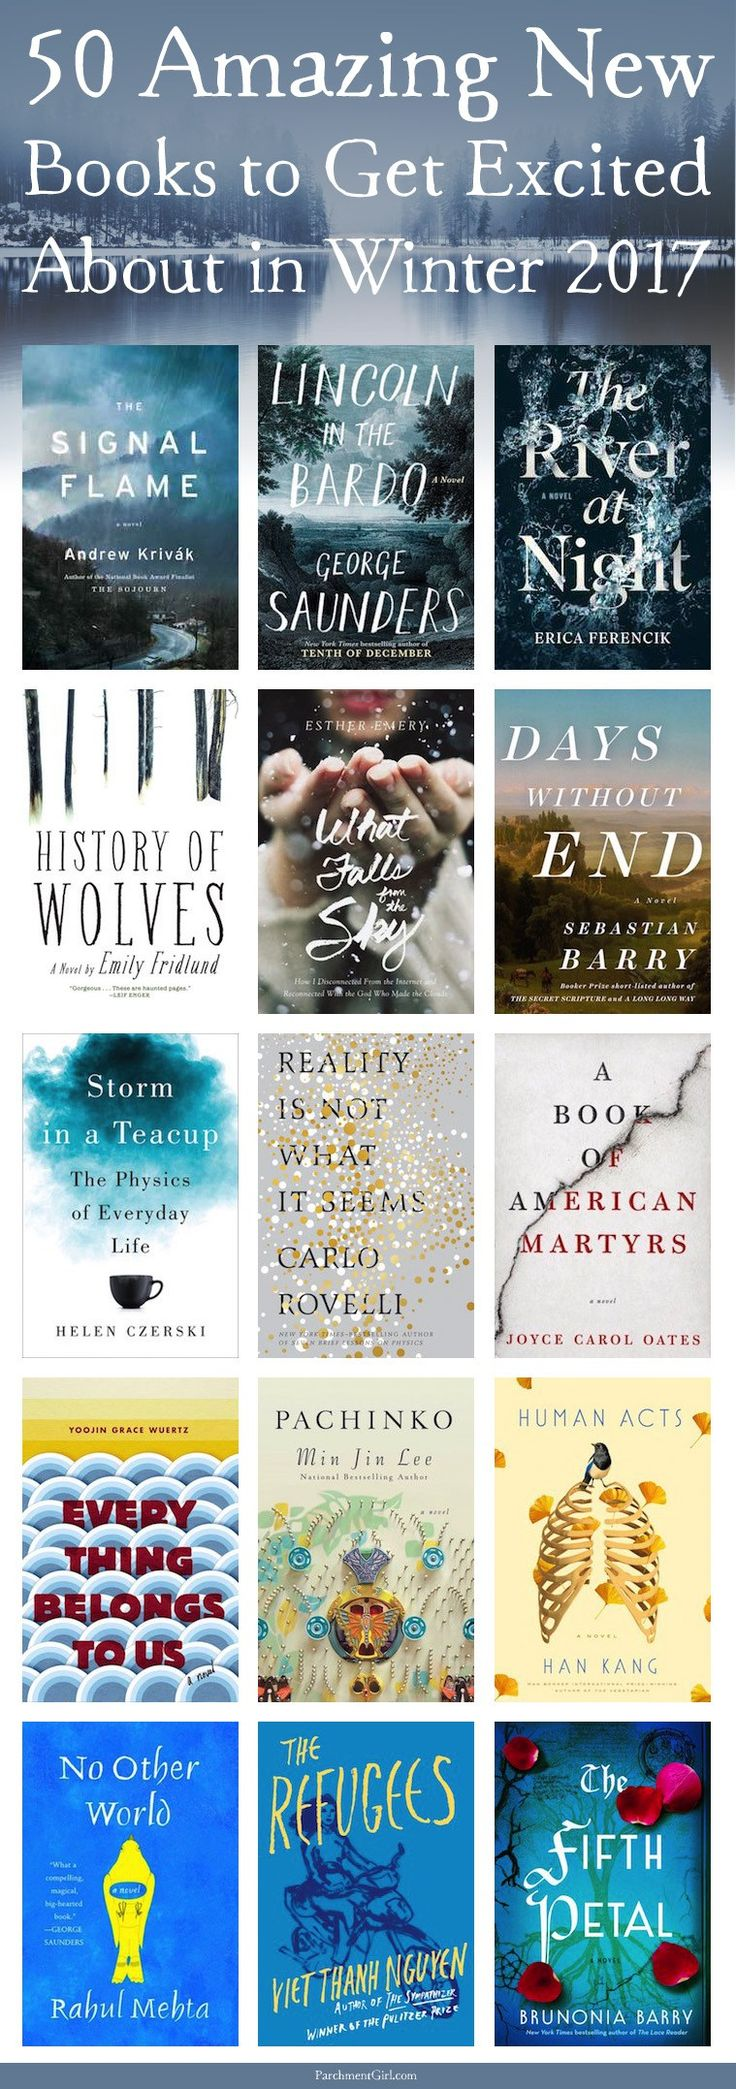 WINTER IS COMING... And so are these 50 amazing new books! Trust me, you won't have any trouble finding something to read this winter.